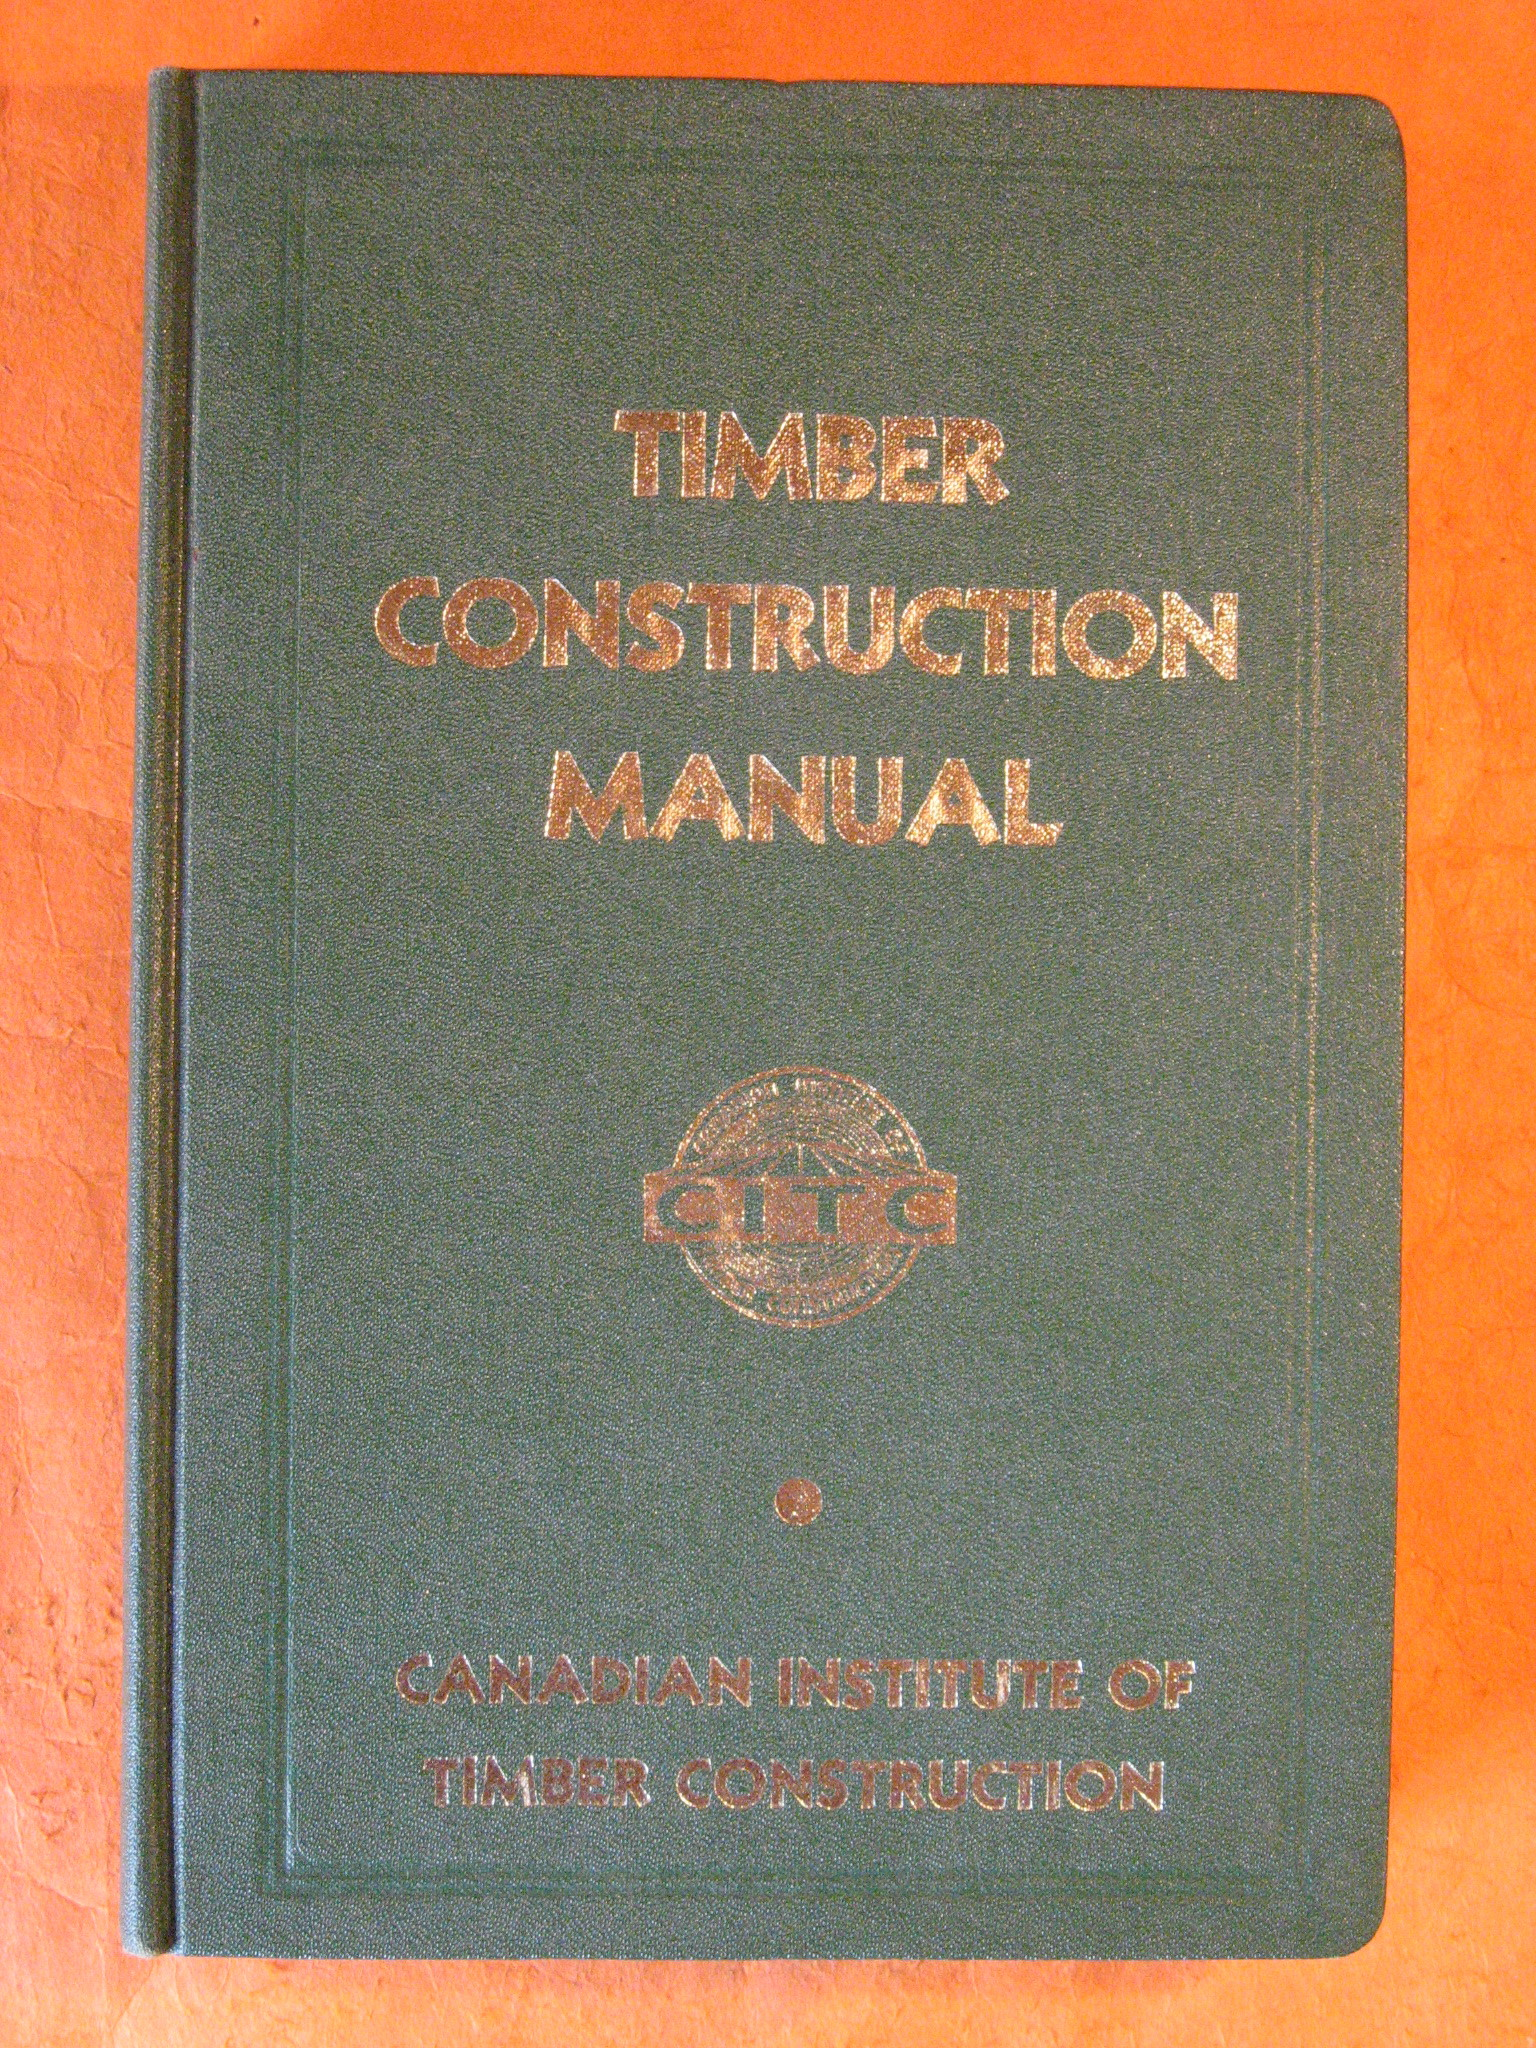 Timber Construction Manual: a Manual for Architechts and Engineers, No Author